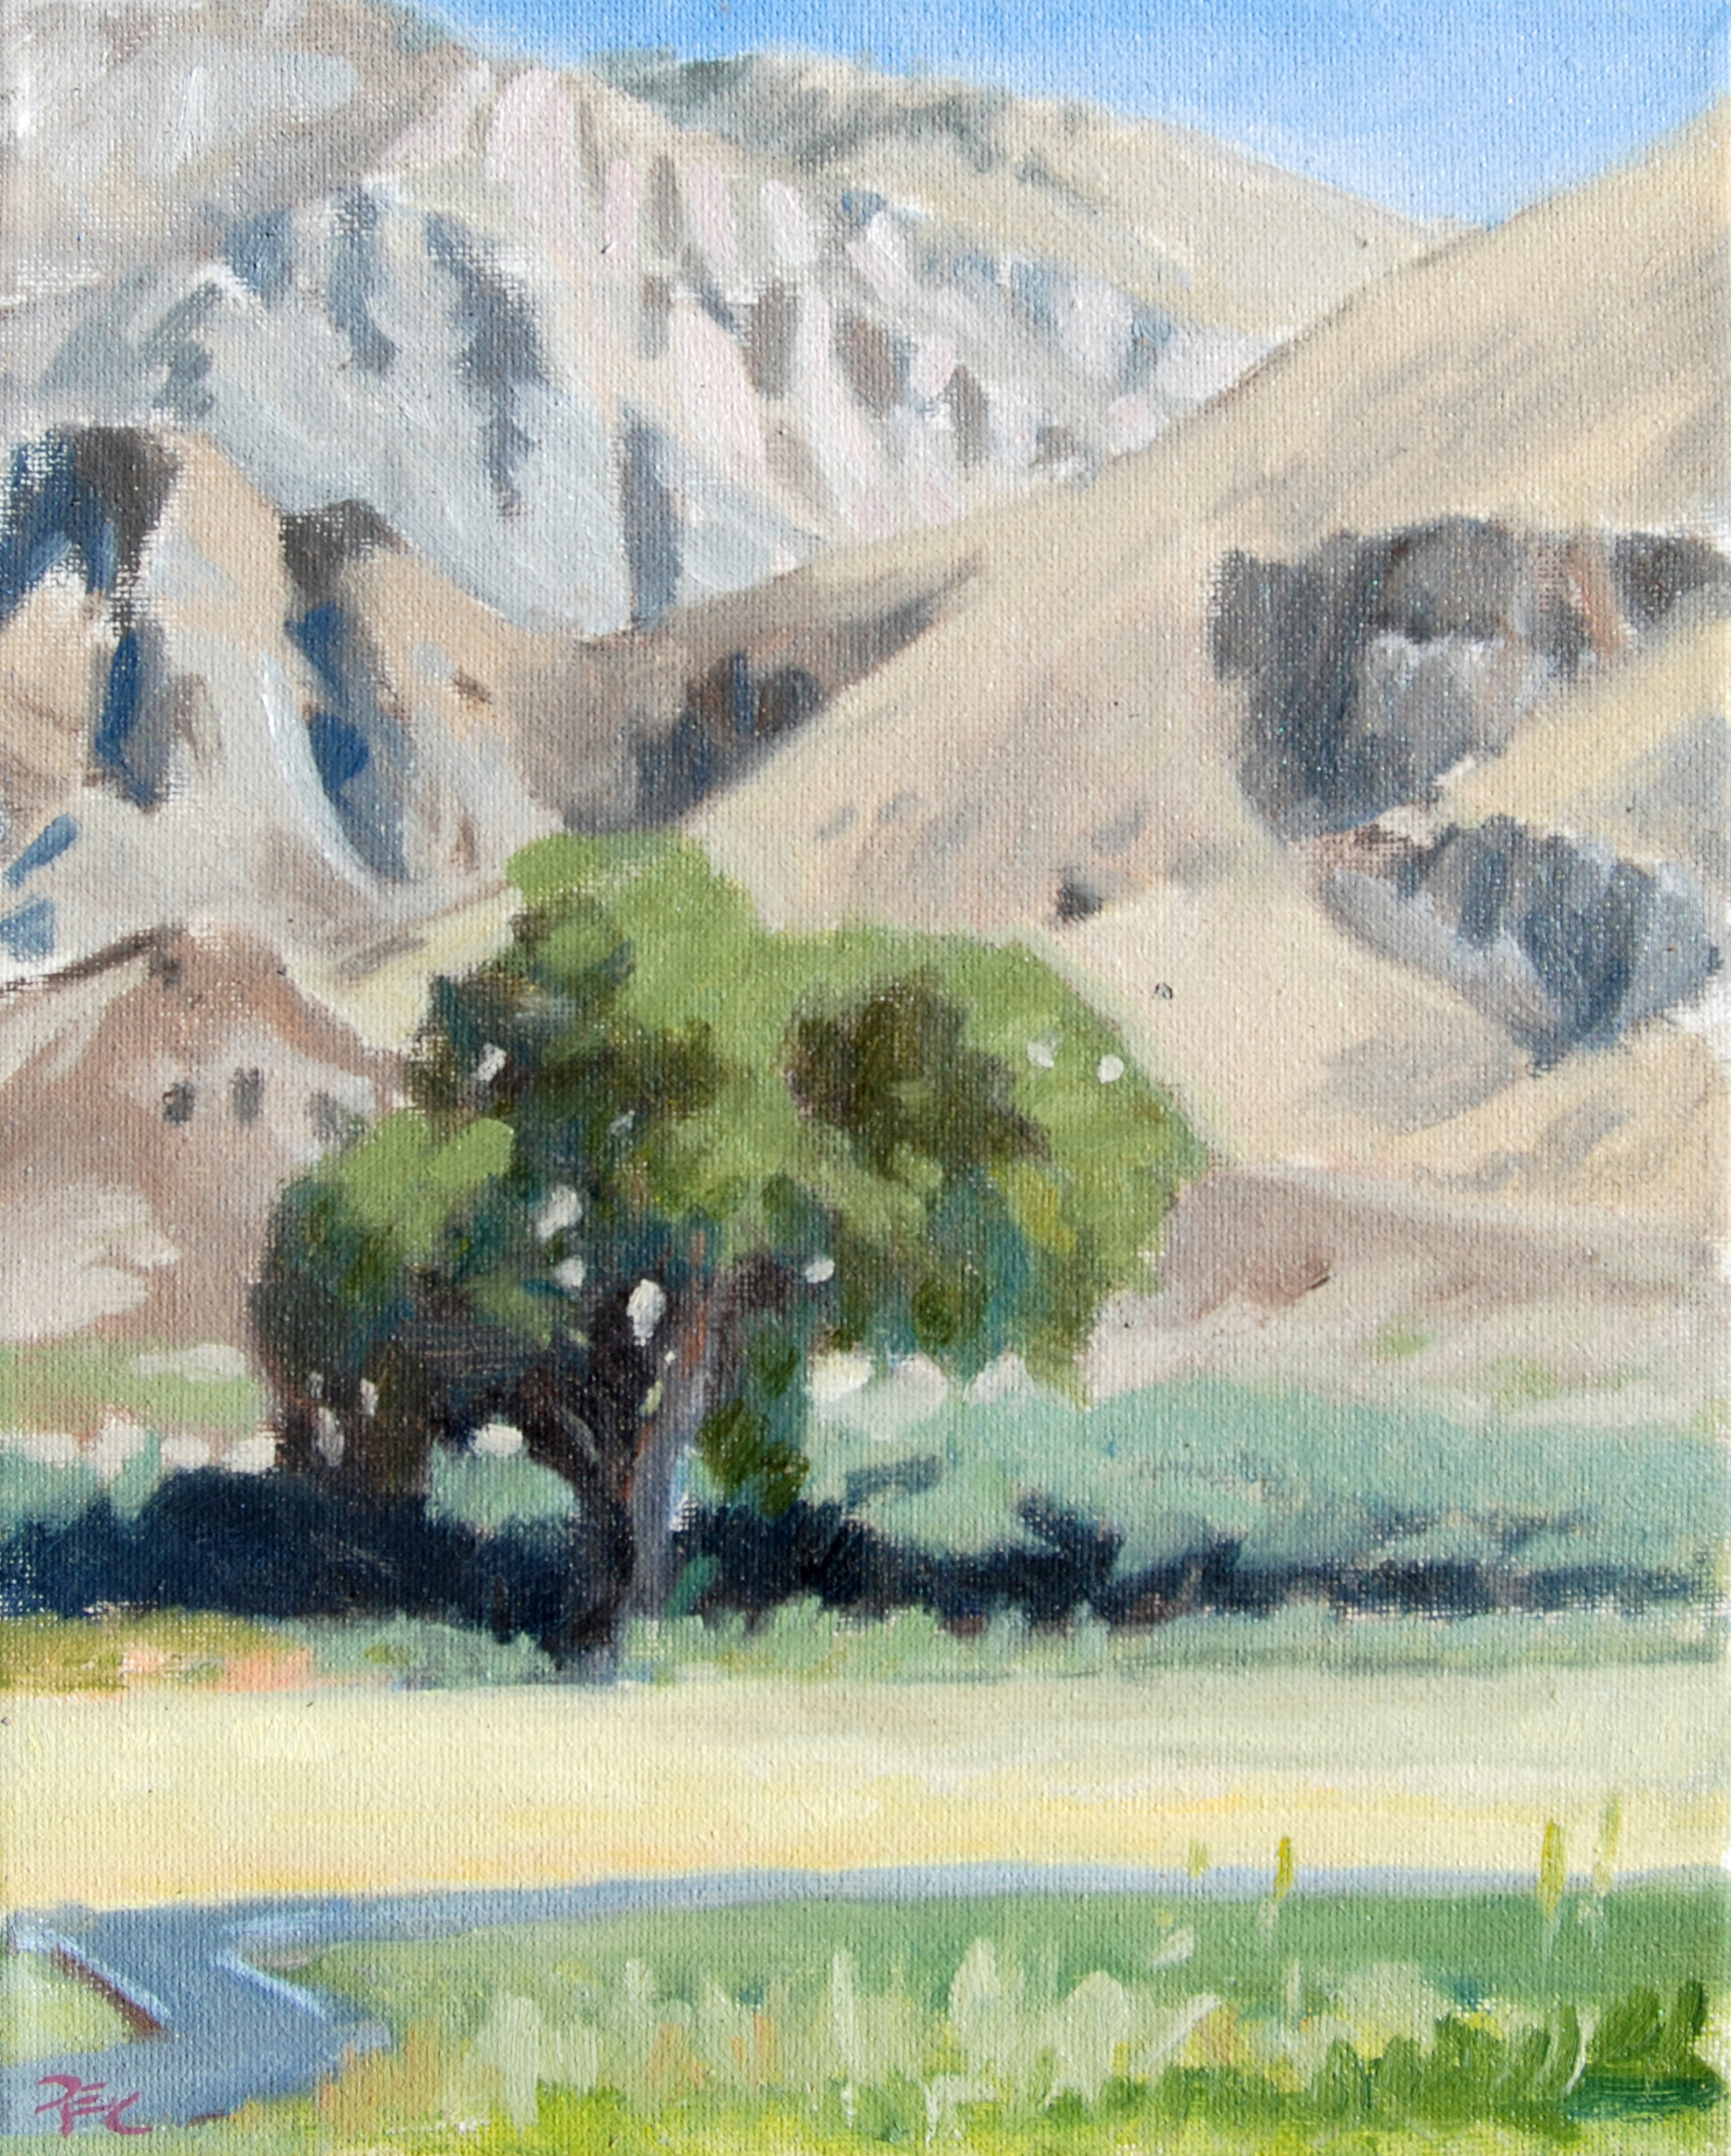 Cant Orchard Tree Study,  10 x 8 in.  Oil on canvas. Available for purchase.  (2016)